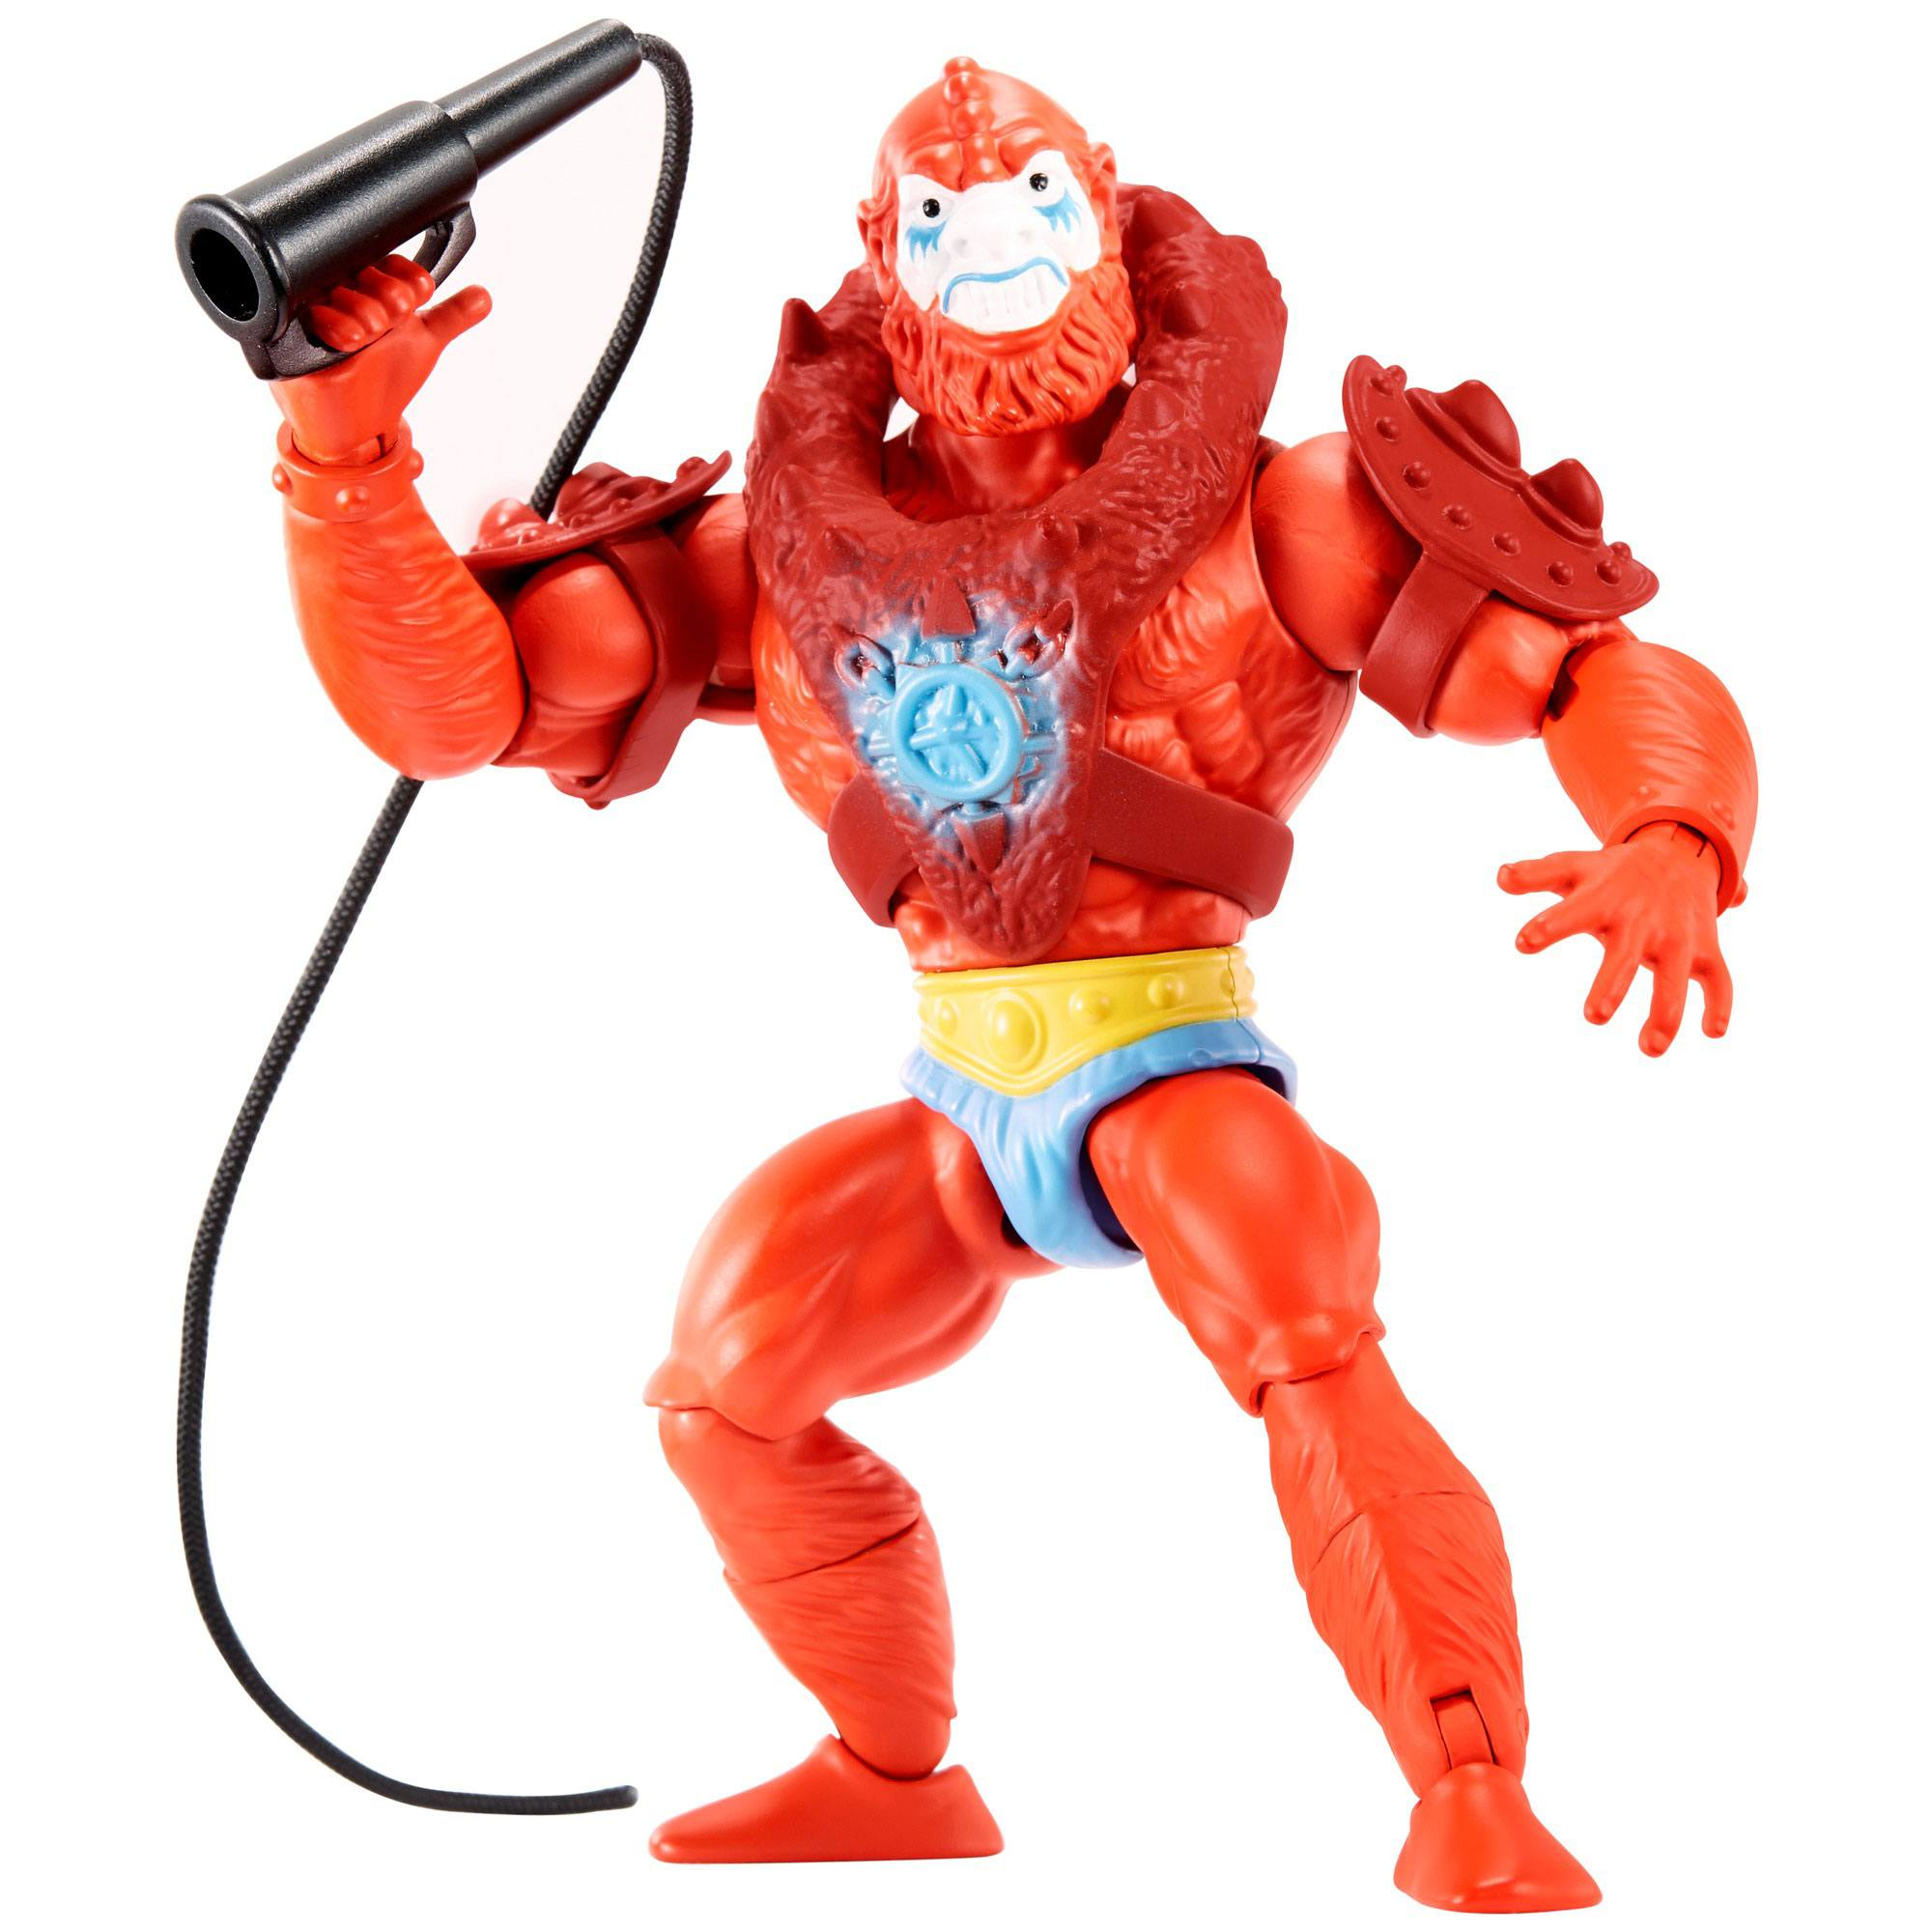 Masters of the Universe Origins Actionfigur 2020 Beast Man 14 cm MATTGNN92 0887961875355